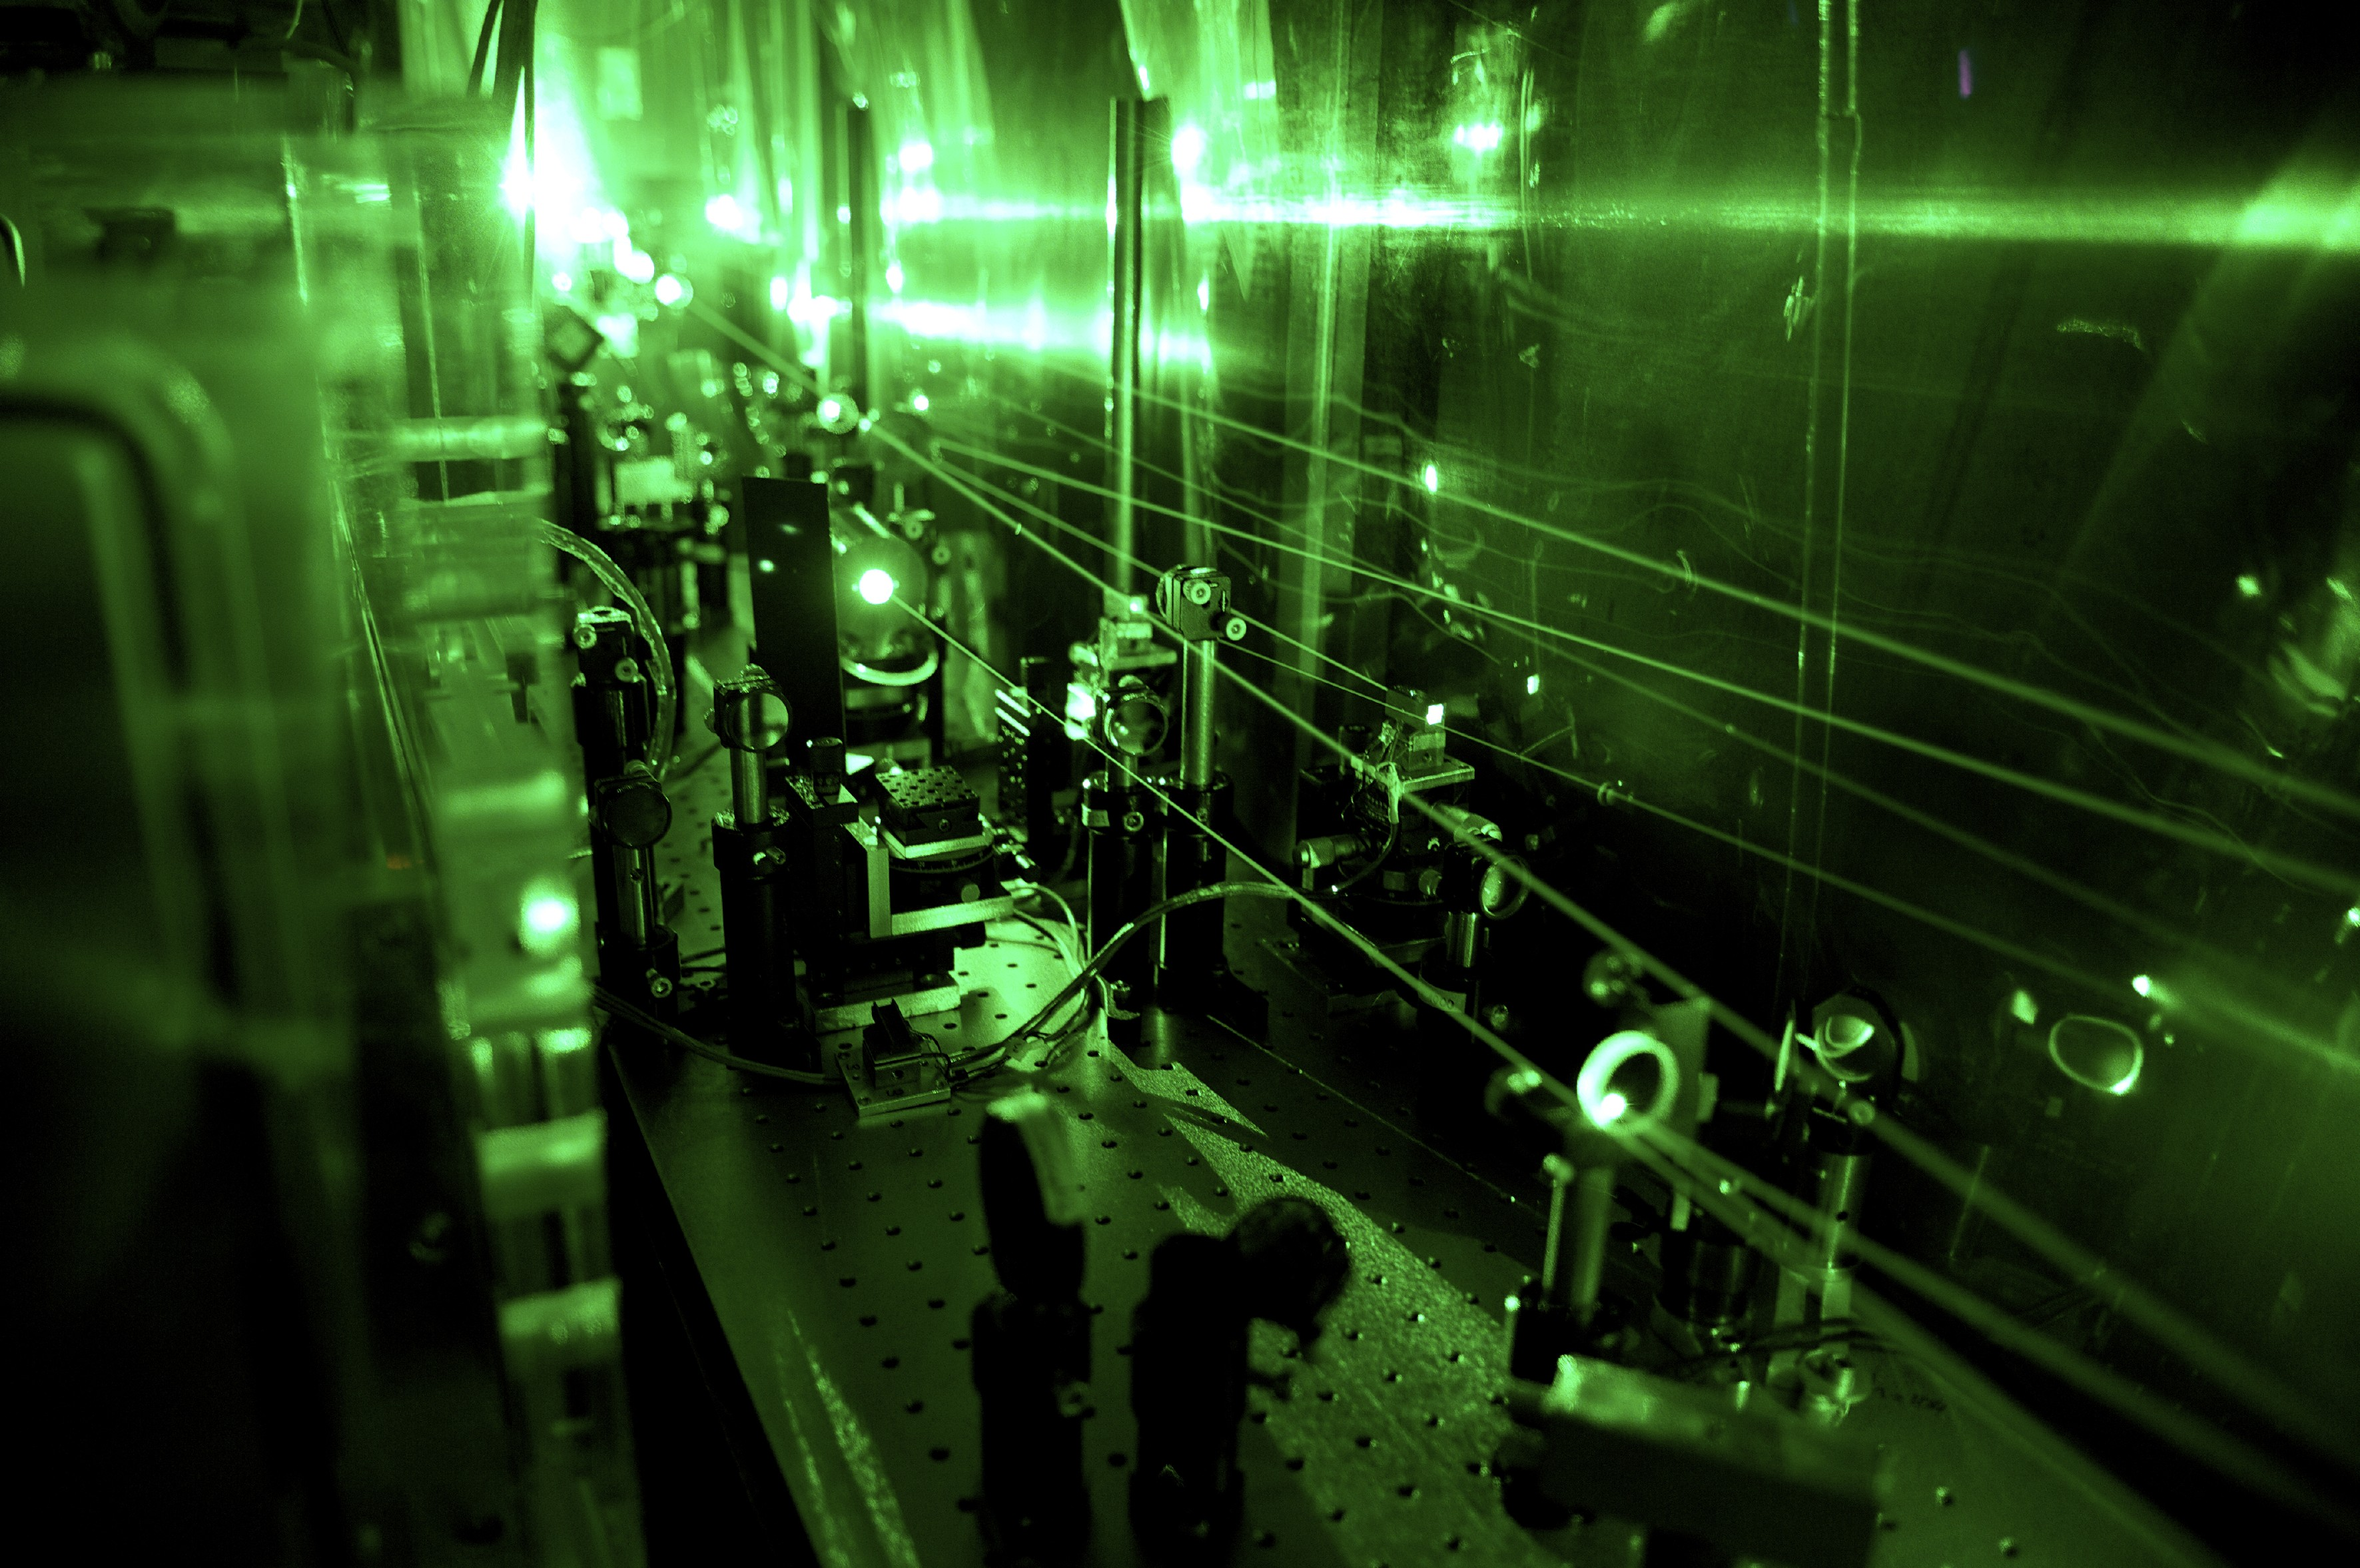 Part of the laser system needed for the experiment for the determination of the size of the deuteron. Here, invisible infrared laser pulses are transformed into green laser light. (Photo: Paul Scherrer Institute/A. Antognini and F. Reiser)